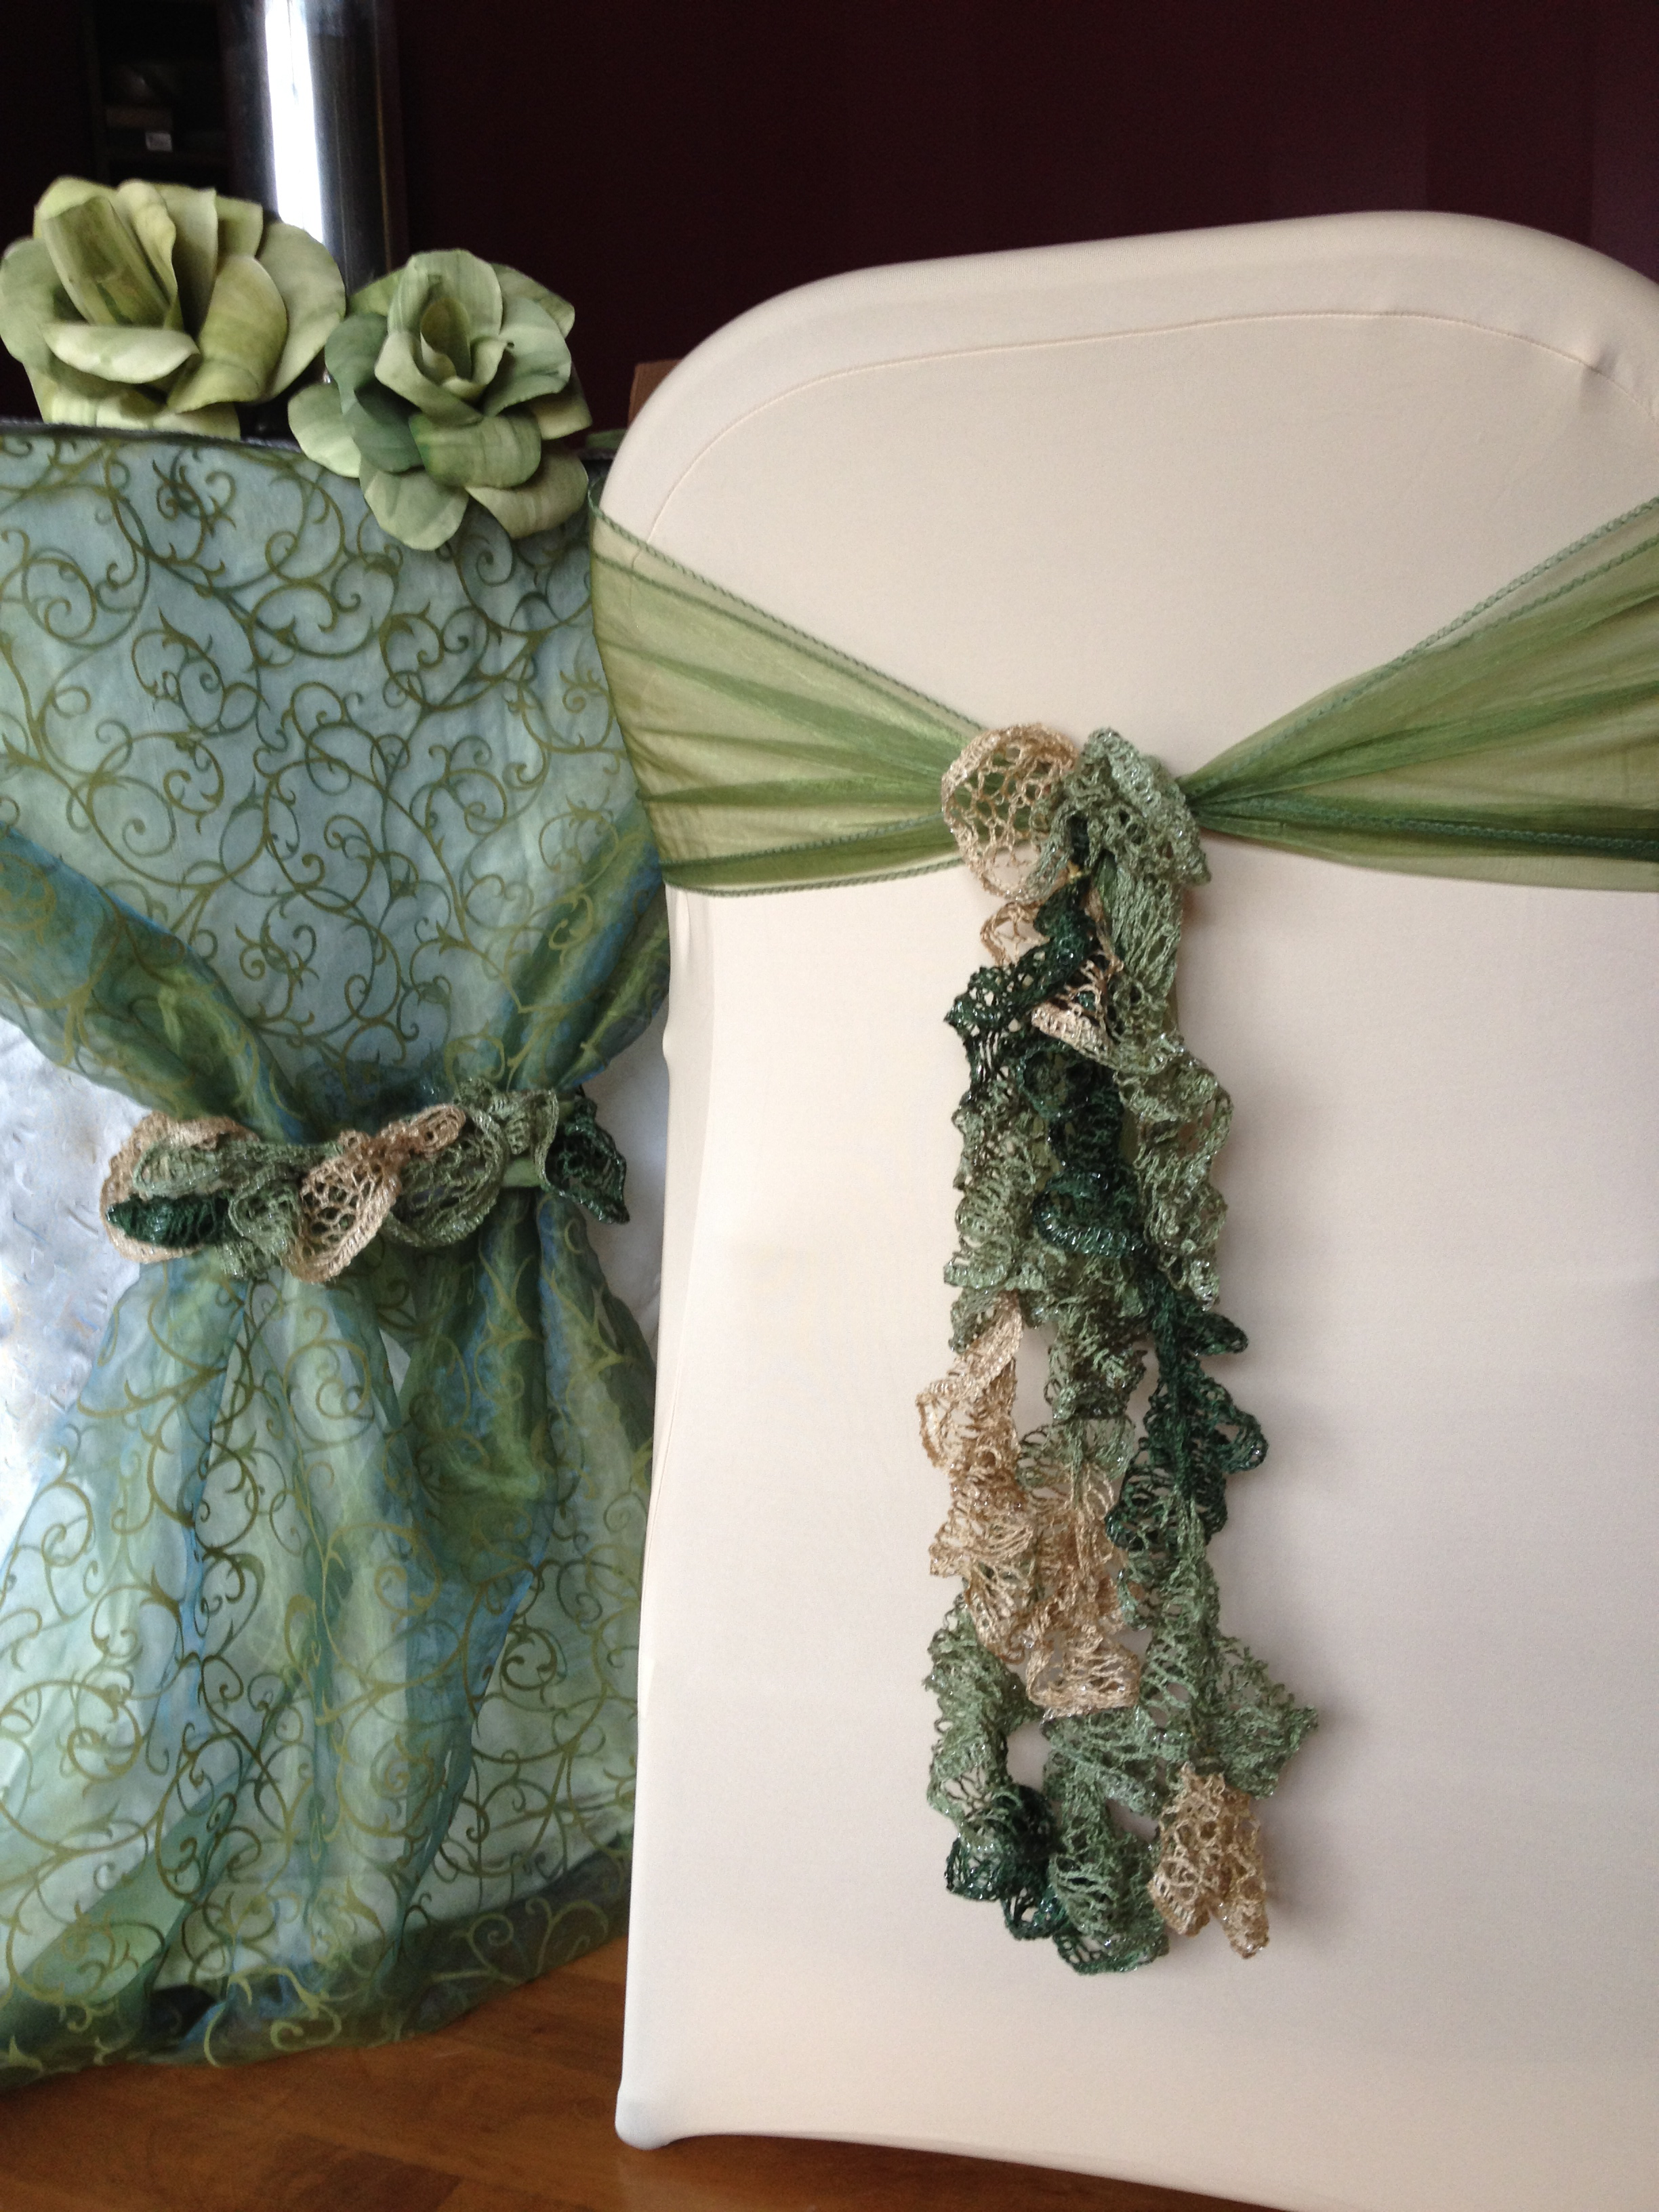 how to tie a slip knot chair sash santa covers bed bath and beyond unique different crafty wedding